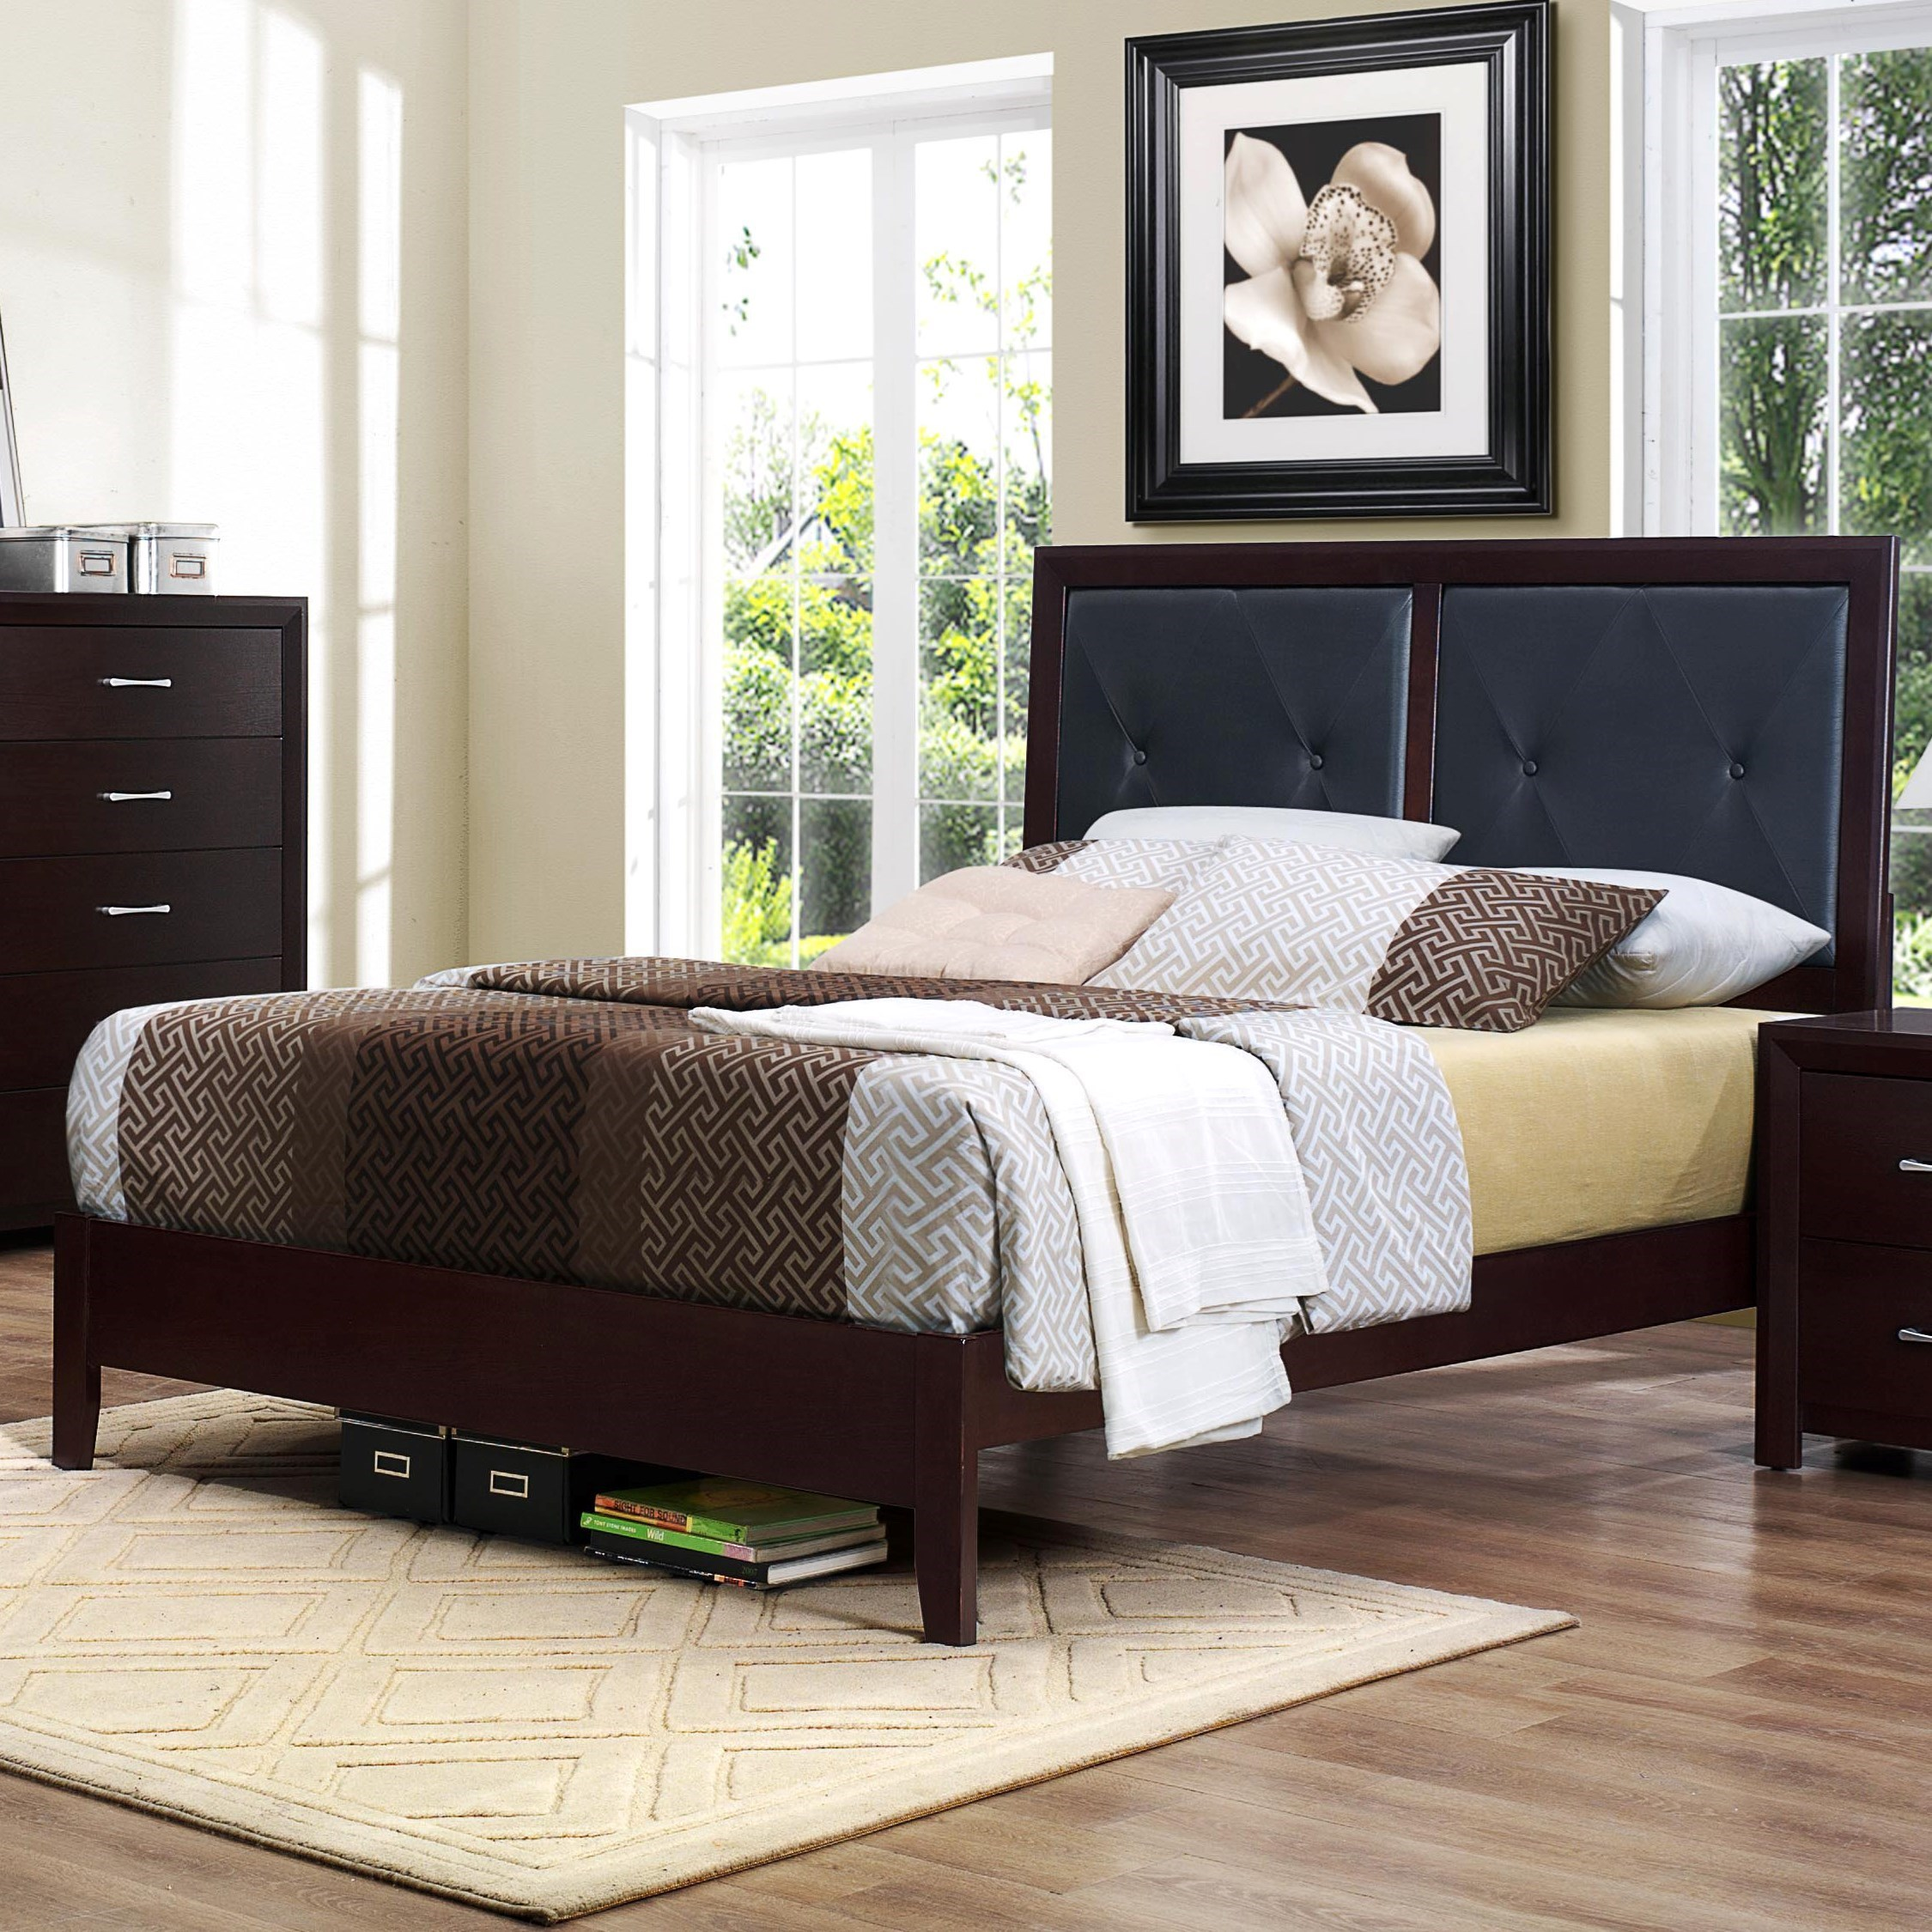 Edina Full Panel Bed by Homelegance at Simply Home by Lindy's